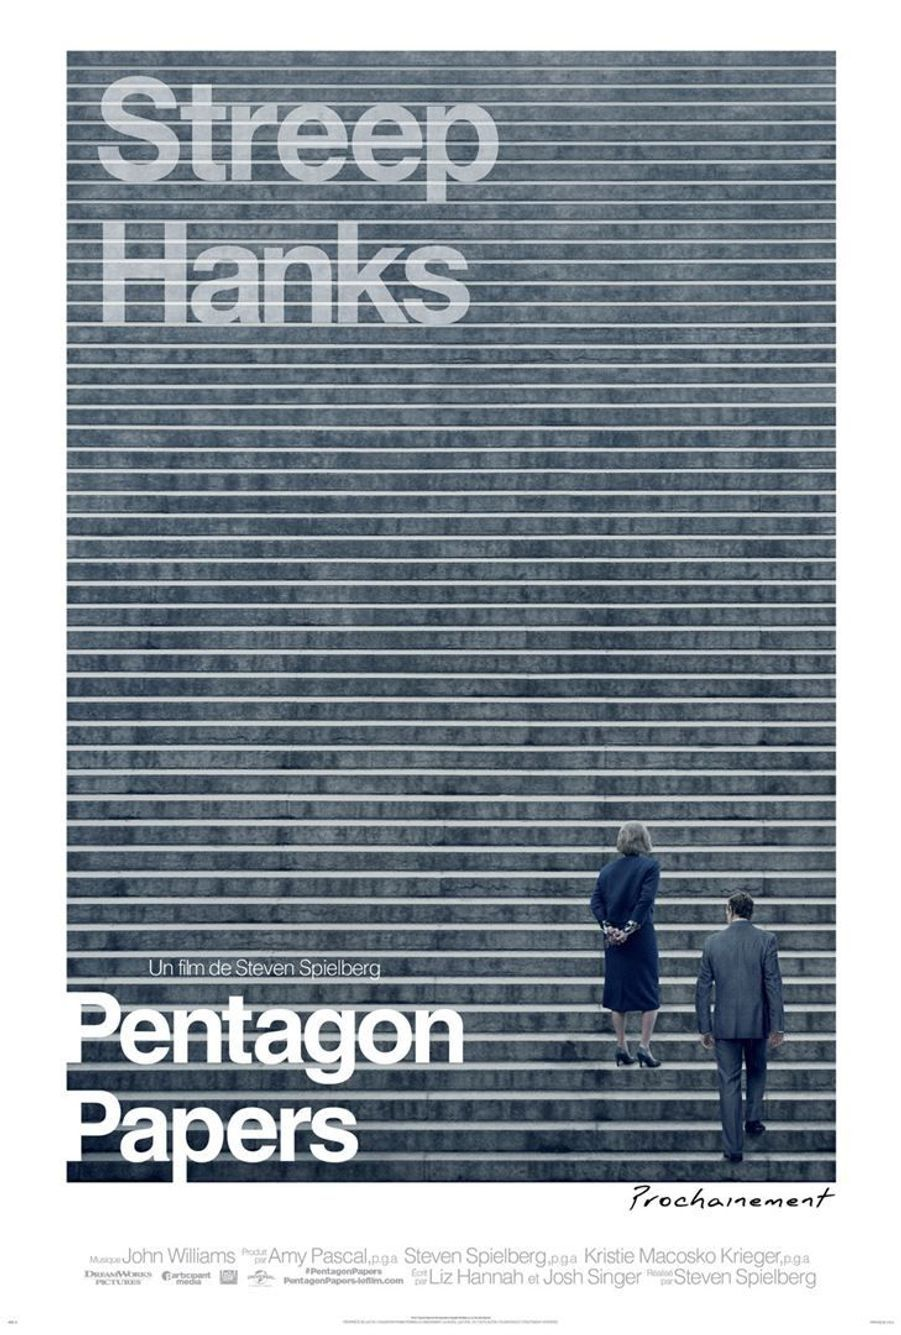 """Pentagon Papers""L'ode au quatrième pouvoir de Steven Spielberg raconte la publication en 1971 par le Washington Post des Pentagon Papers, des documents secrets exposant les mensonges du gouvernement américain sur la guerre du Vietnam."